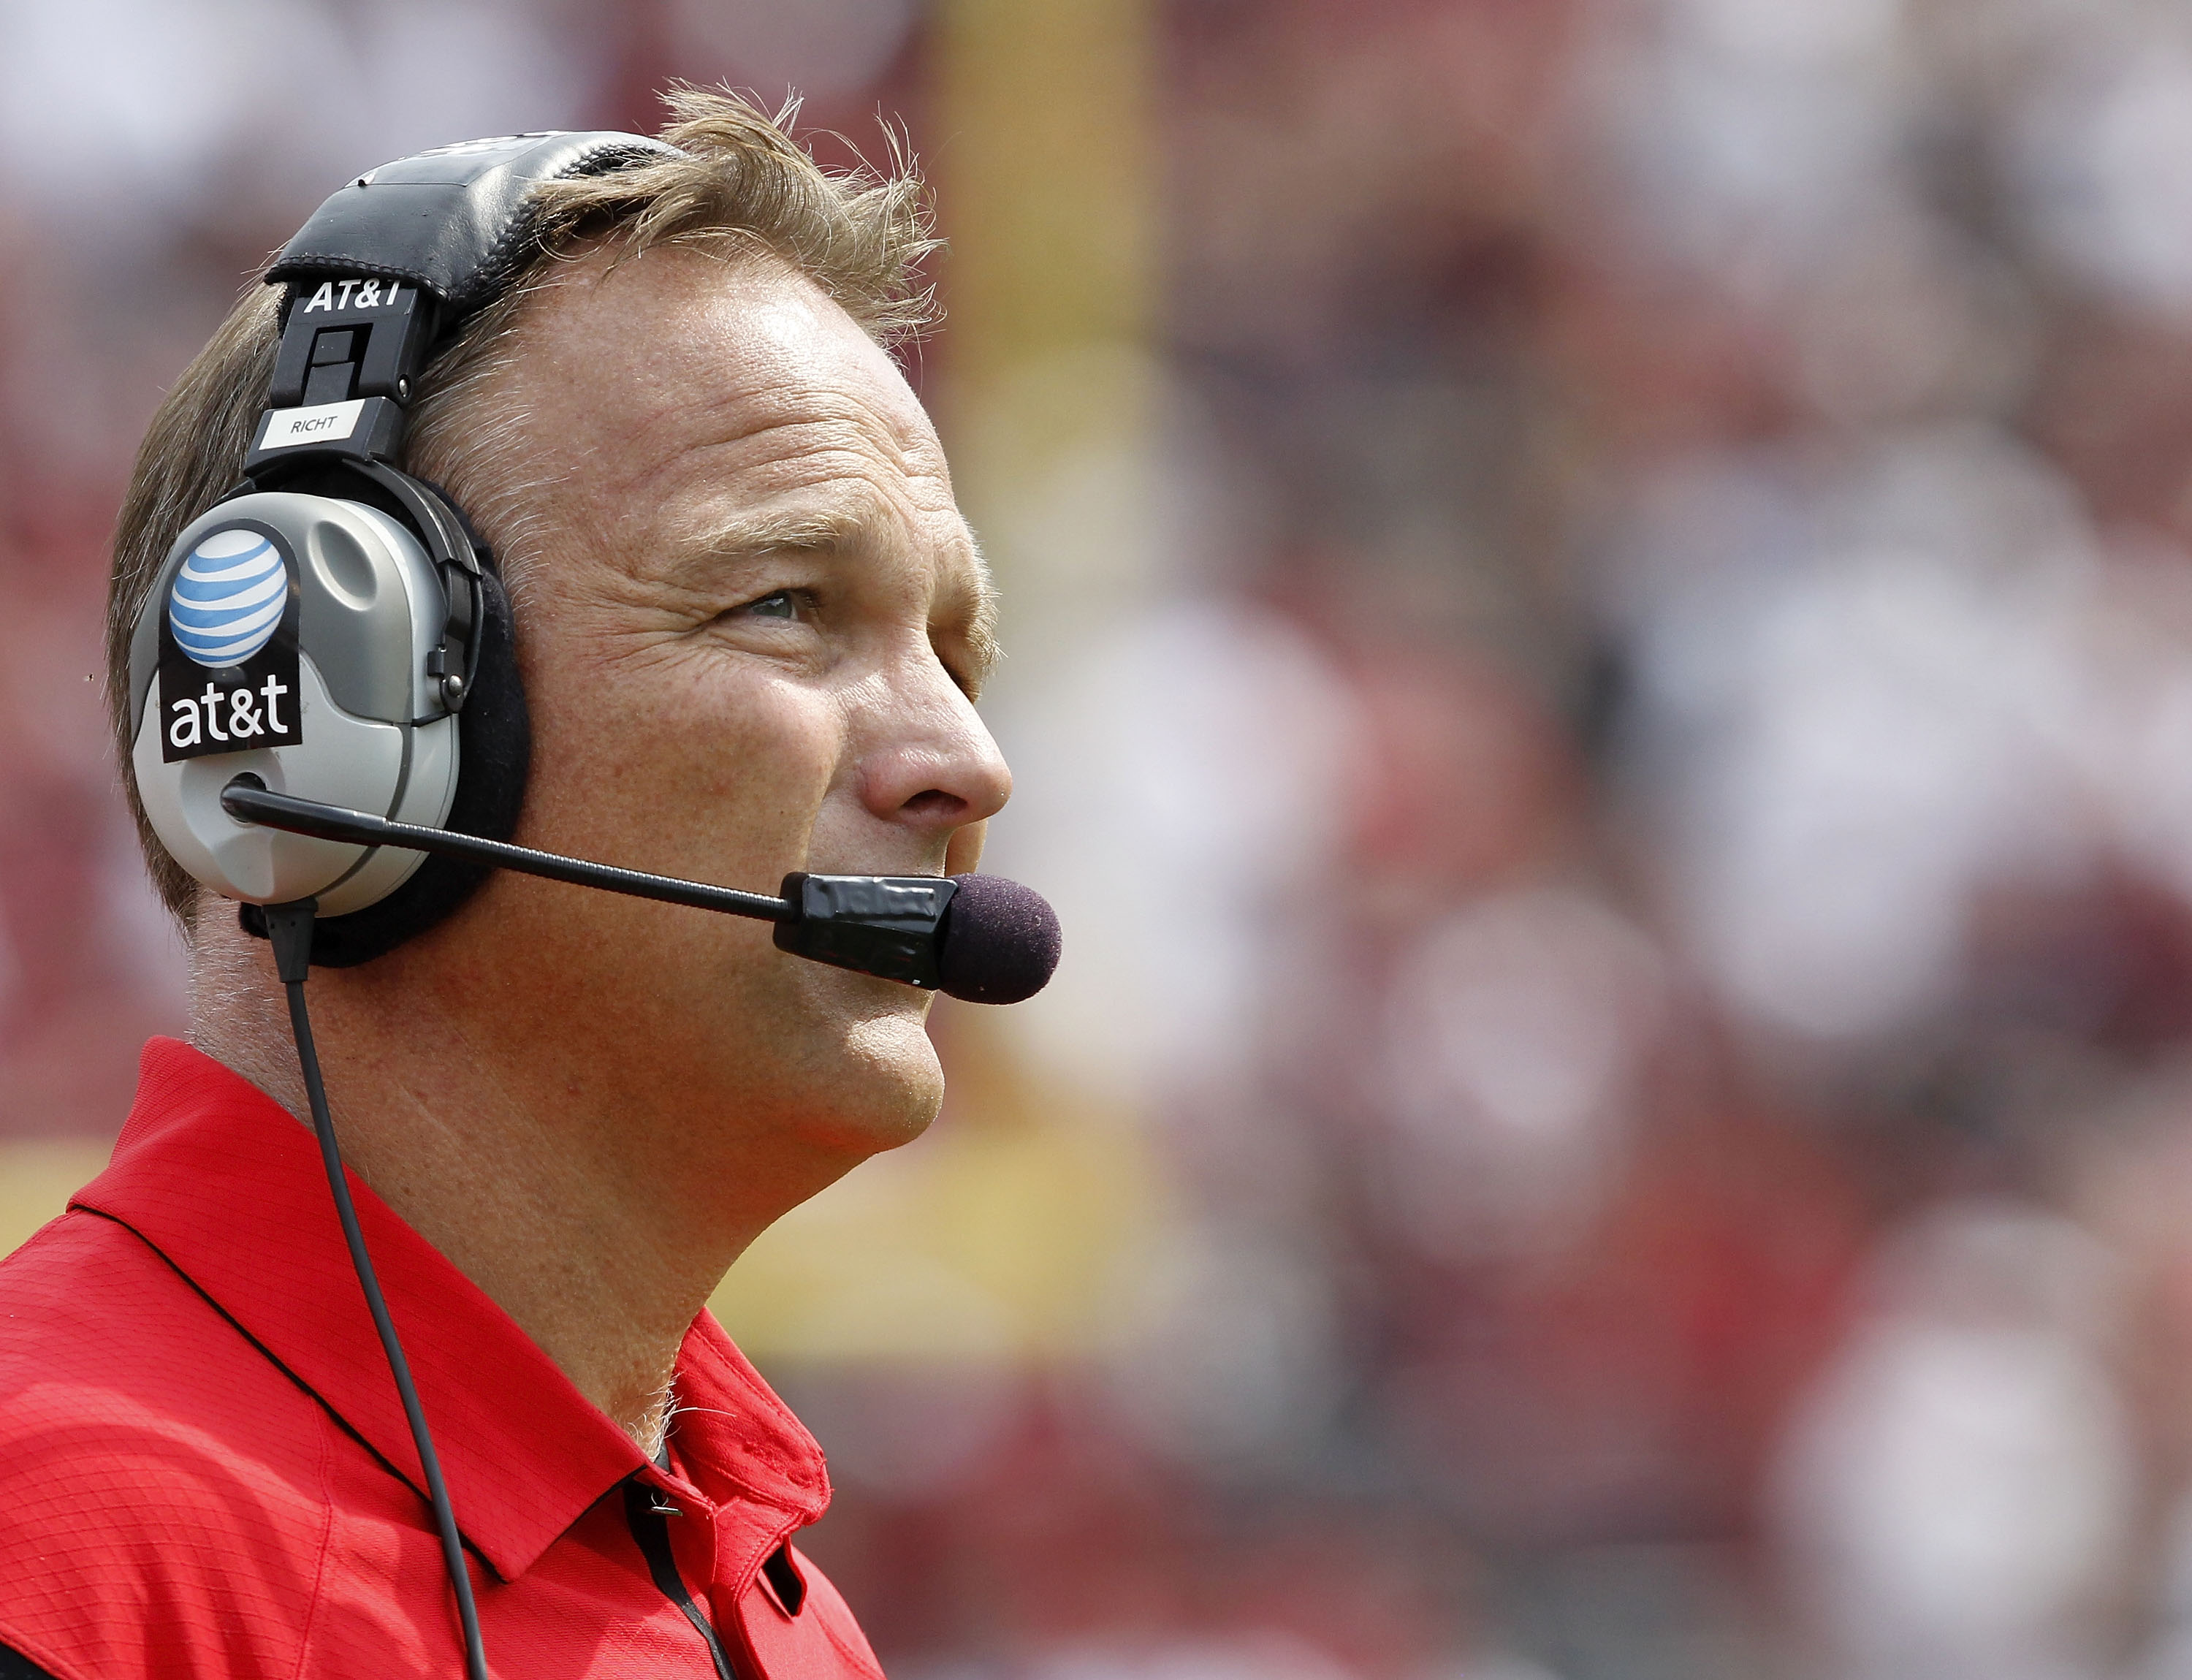 COLUMBIA, SC - SEPTEMBER 11:  Georgia Bulldogs head coach Mark Richt watches the action on the field during the game against the South Carolina Gamecocks at Williams-Brice Stadium on September 11, 2010 in Columbia, South Carolina.  (Photo by Mike Zarrilli